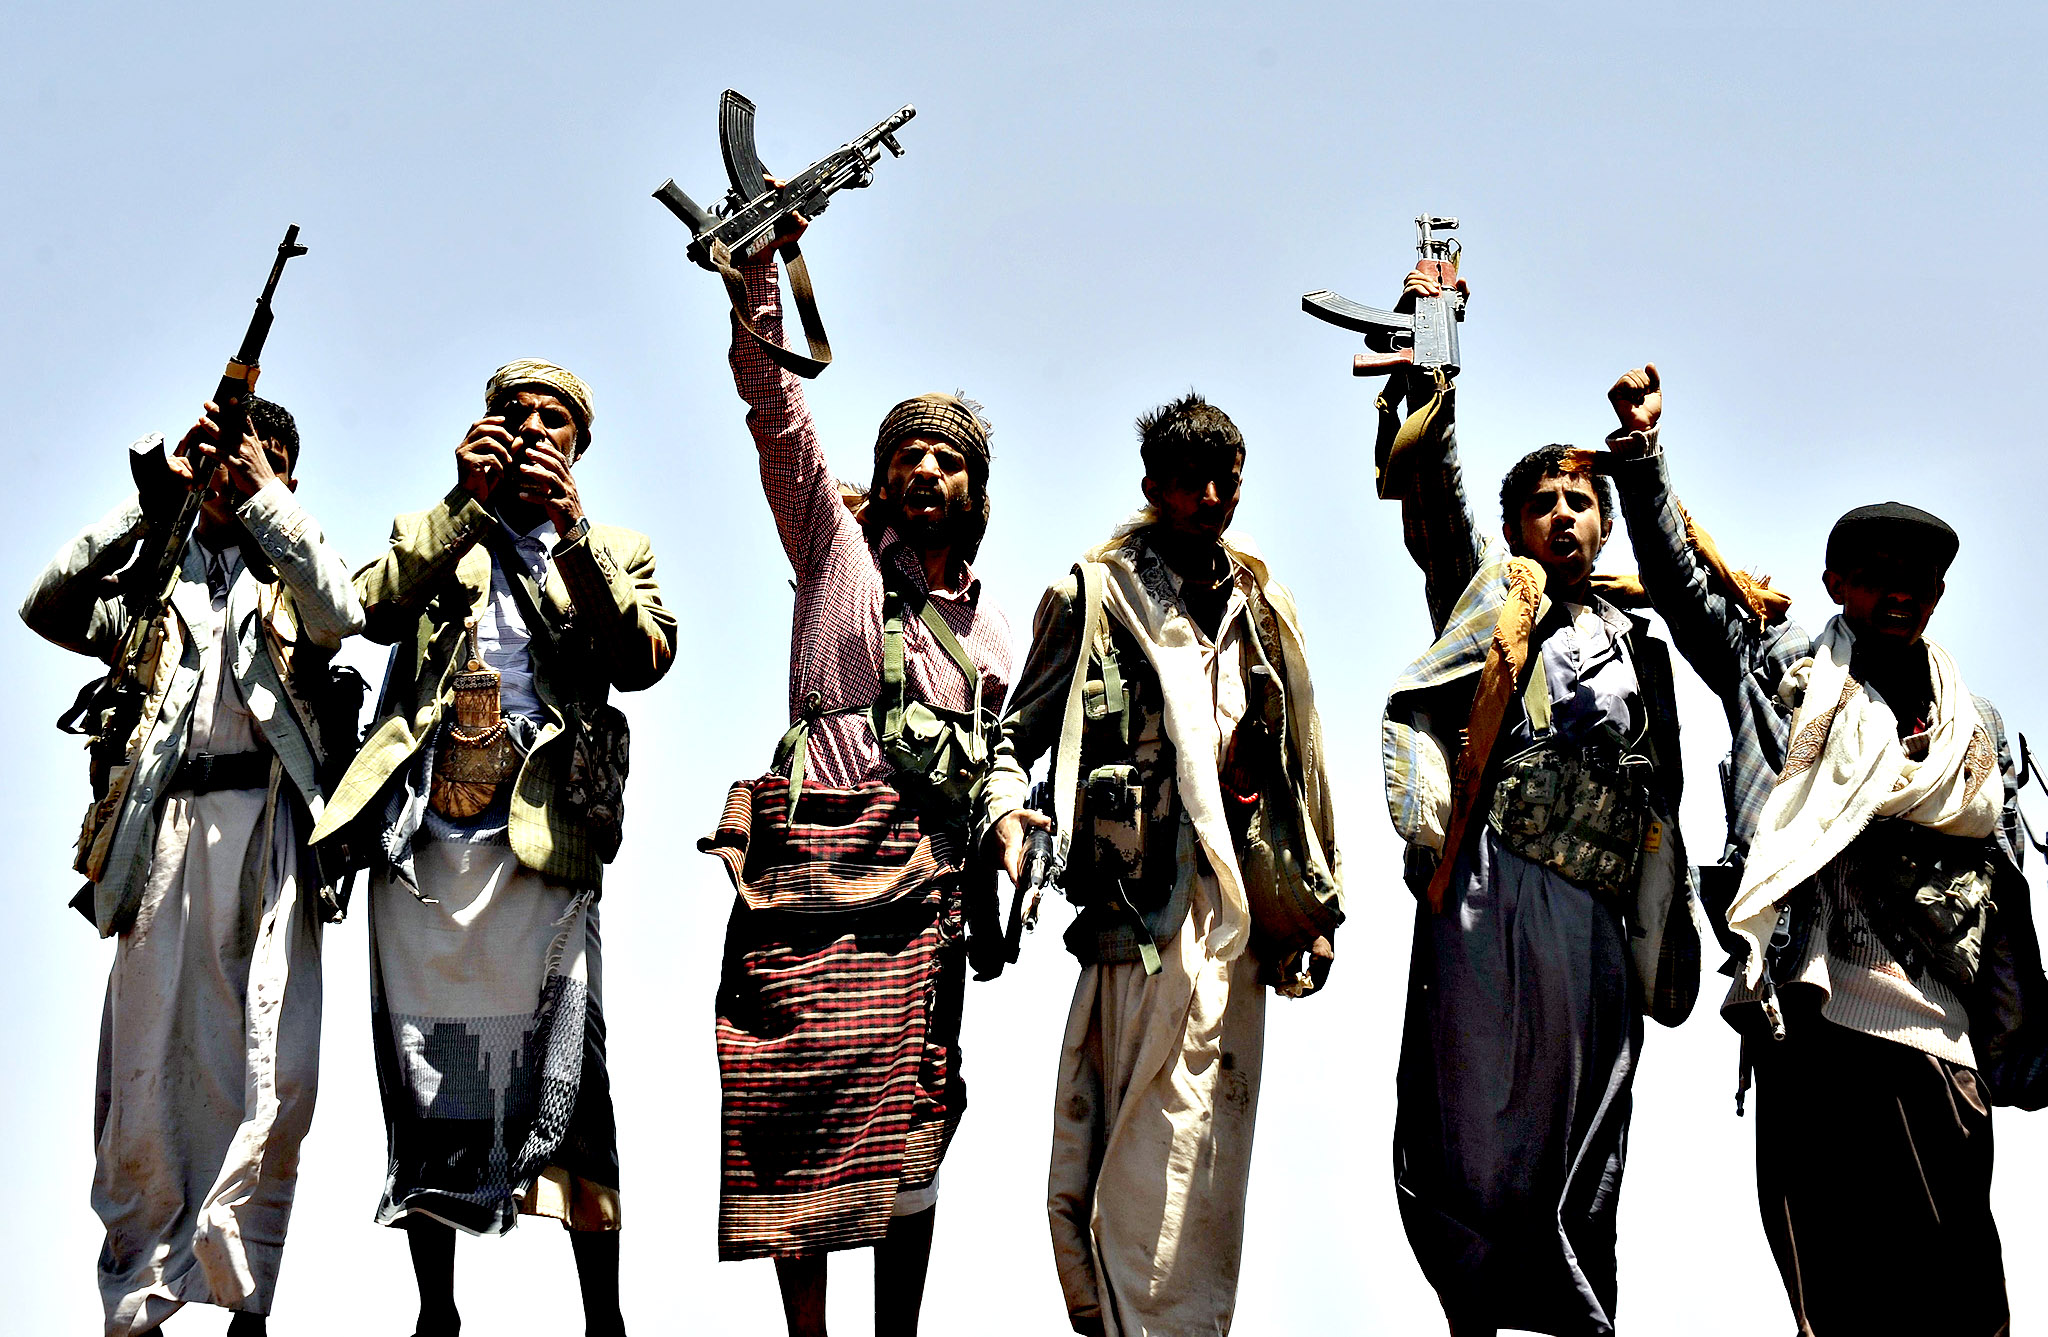 Shiite fighters seized control of the capital Sana a...epa04411989 Gunmen of the Shiite Houthi movement shout anti-Government slogans as they stand on a hill overlooking the capital  after they consolidated their foothold in Sana'a, Yemen, 22 September 2014. Reports state the Yemeni government and Shiite Houthi rebels on 21 September signed a UN-brokered ceasefire hours after Houthi insurgents captured major state institutions in the Arabian Peninsula country's worst crisis in three years.  The deal, including calls for an immediate ceasefire, the formation of a national unity government and economic reforms, was announced after four days of heavy fighting in Sana'a, pitting the Houthis against Sunni rivals backed by government forces.